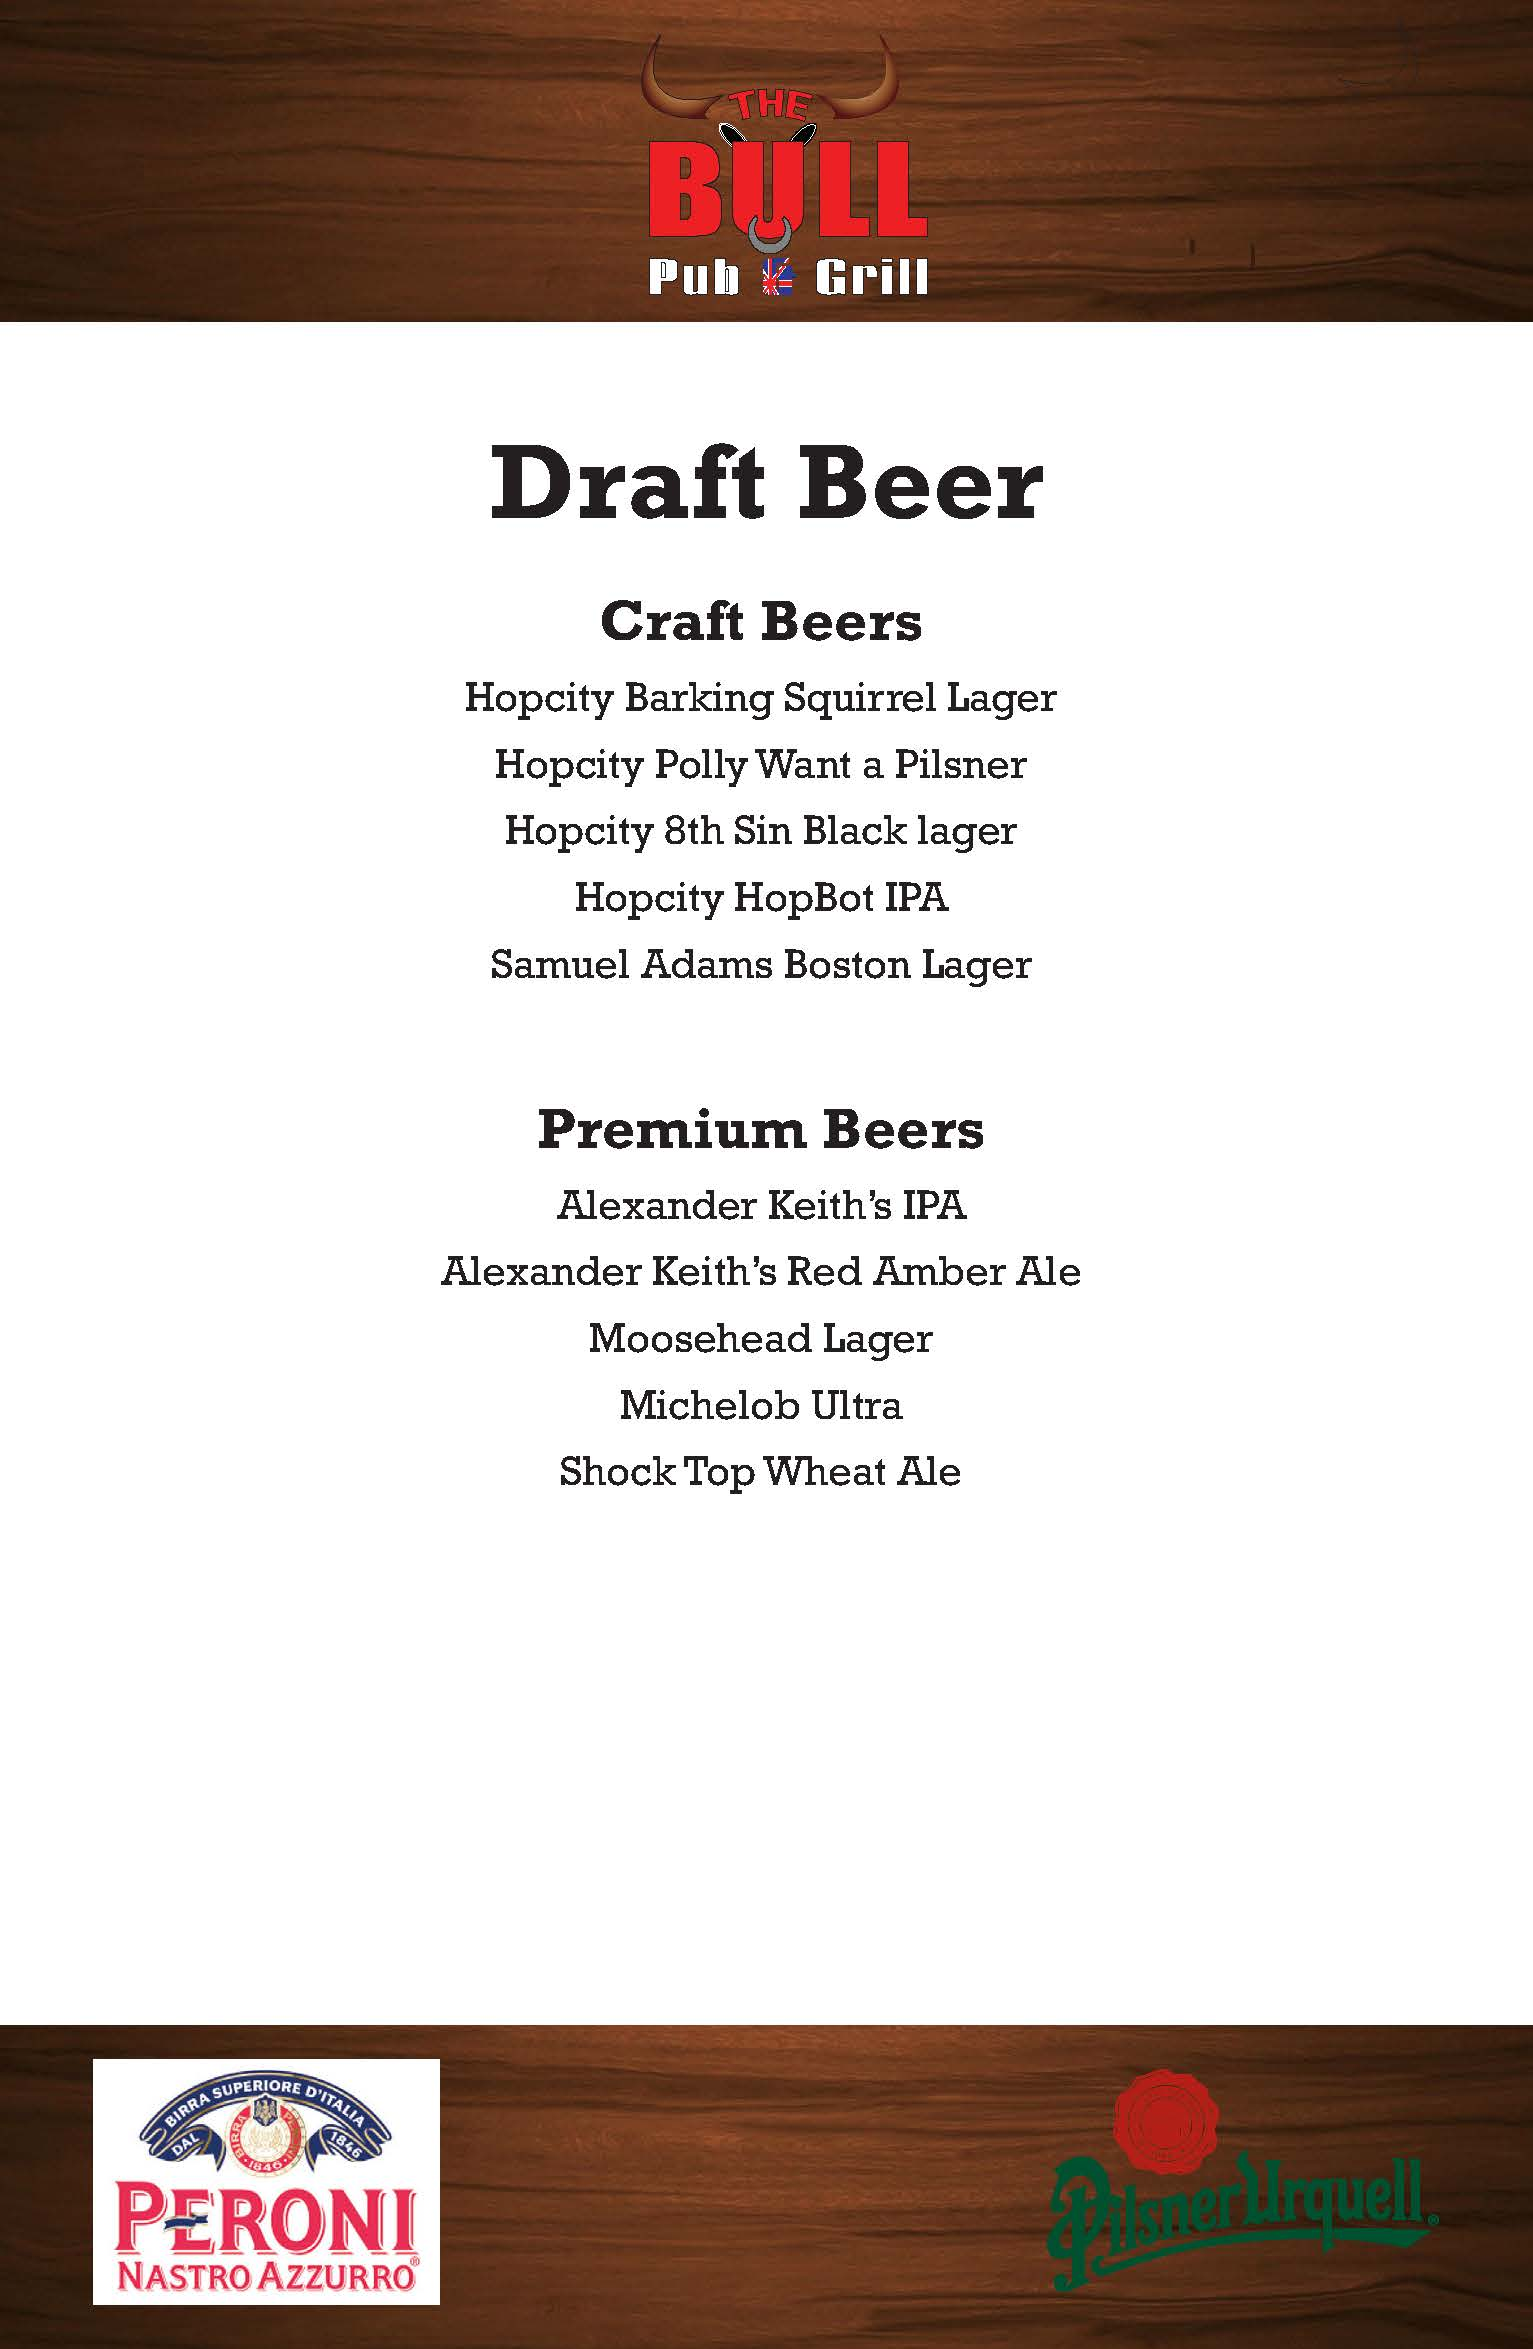 Bull Beer List August 2017_Page_1